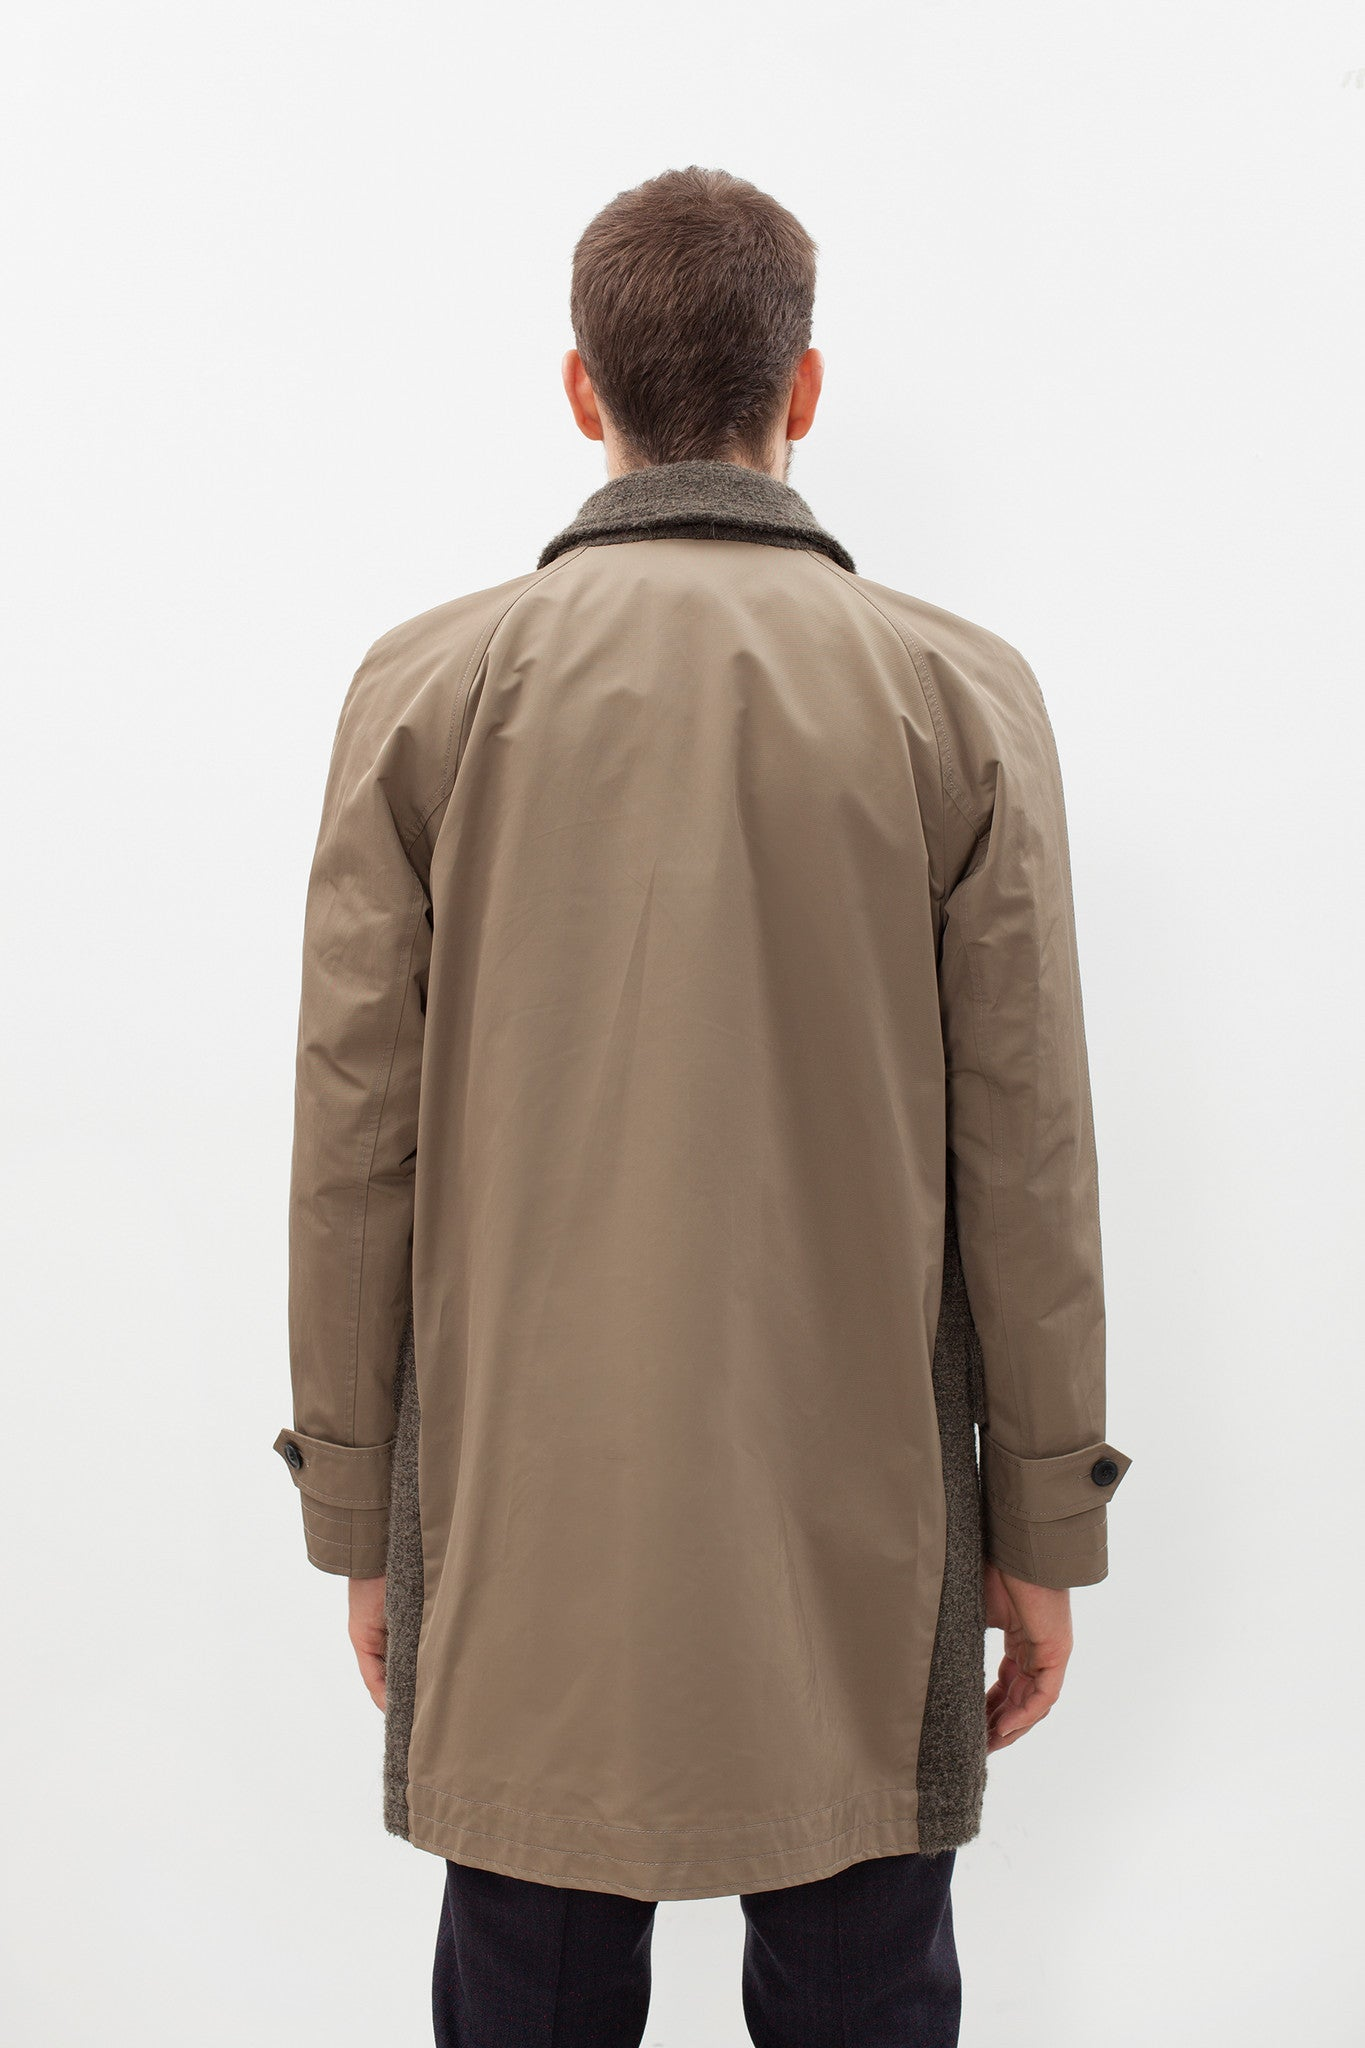 Raglan Maniche Coat in Olive